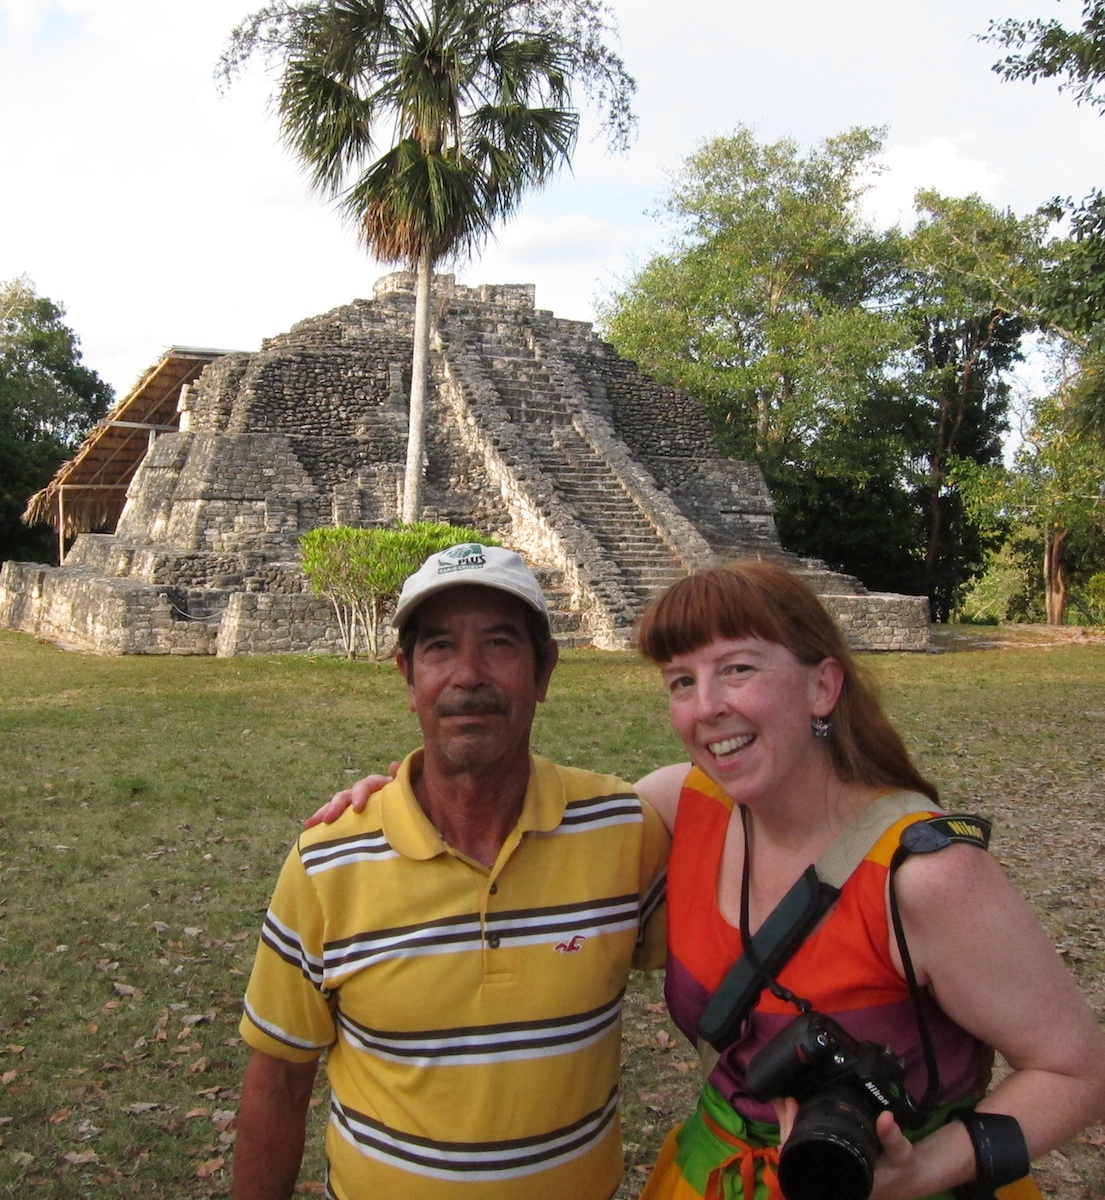 Philip's personal photographer, Margaret, with the Commander of Chacchoben. Photo by Philip Wilson.